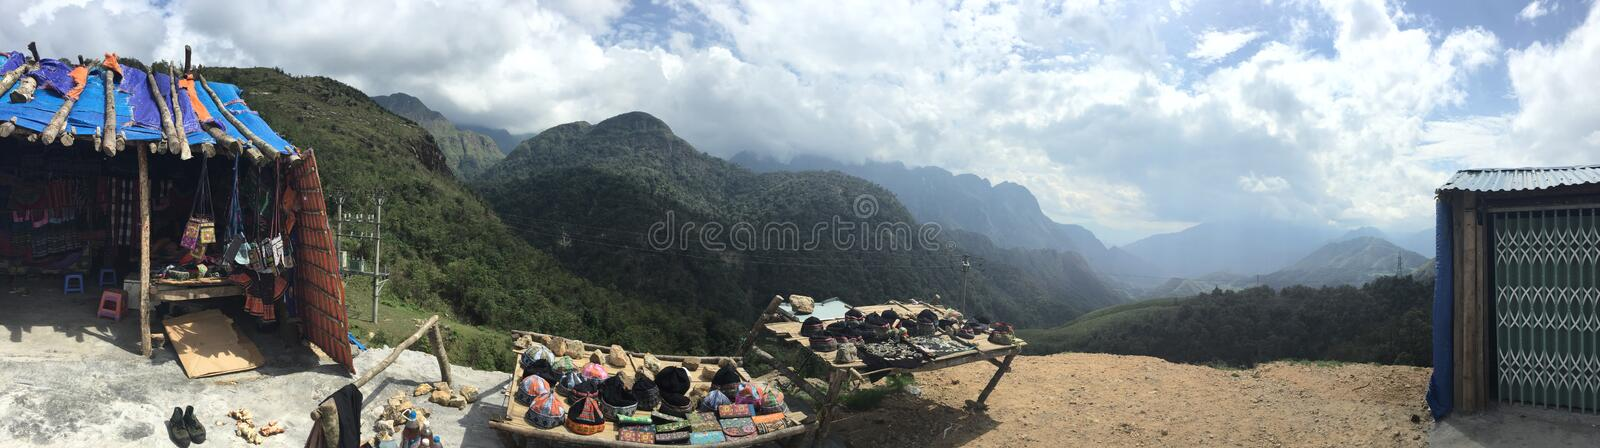 Vietnam Sapa Countryside uphill blue sky royalty free stock photography